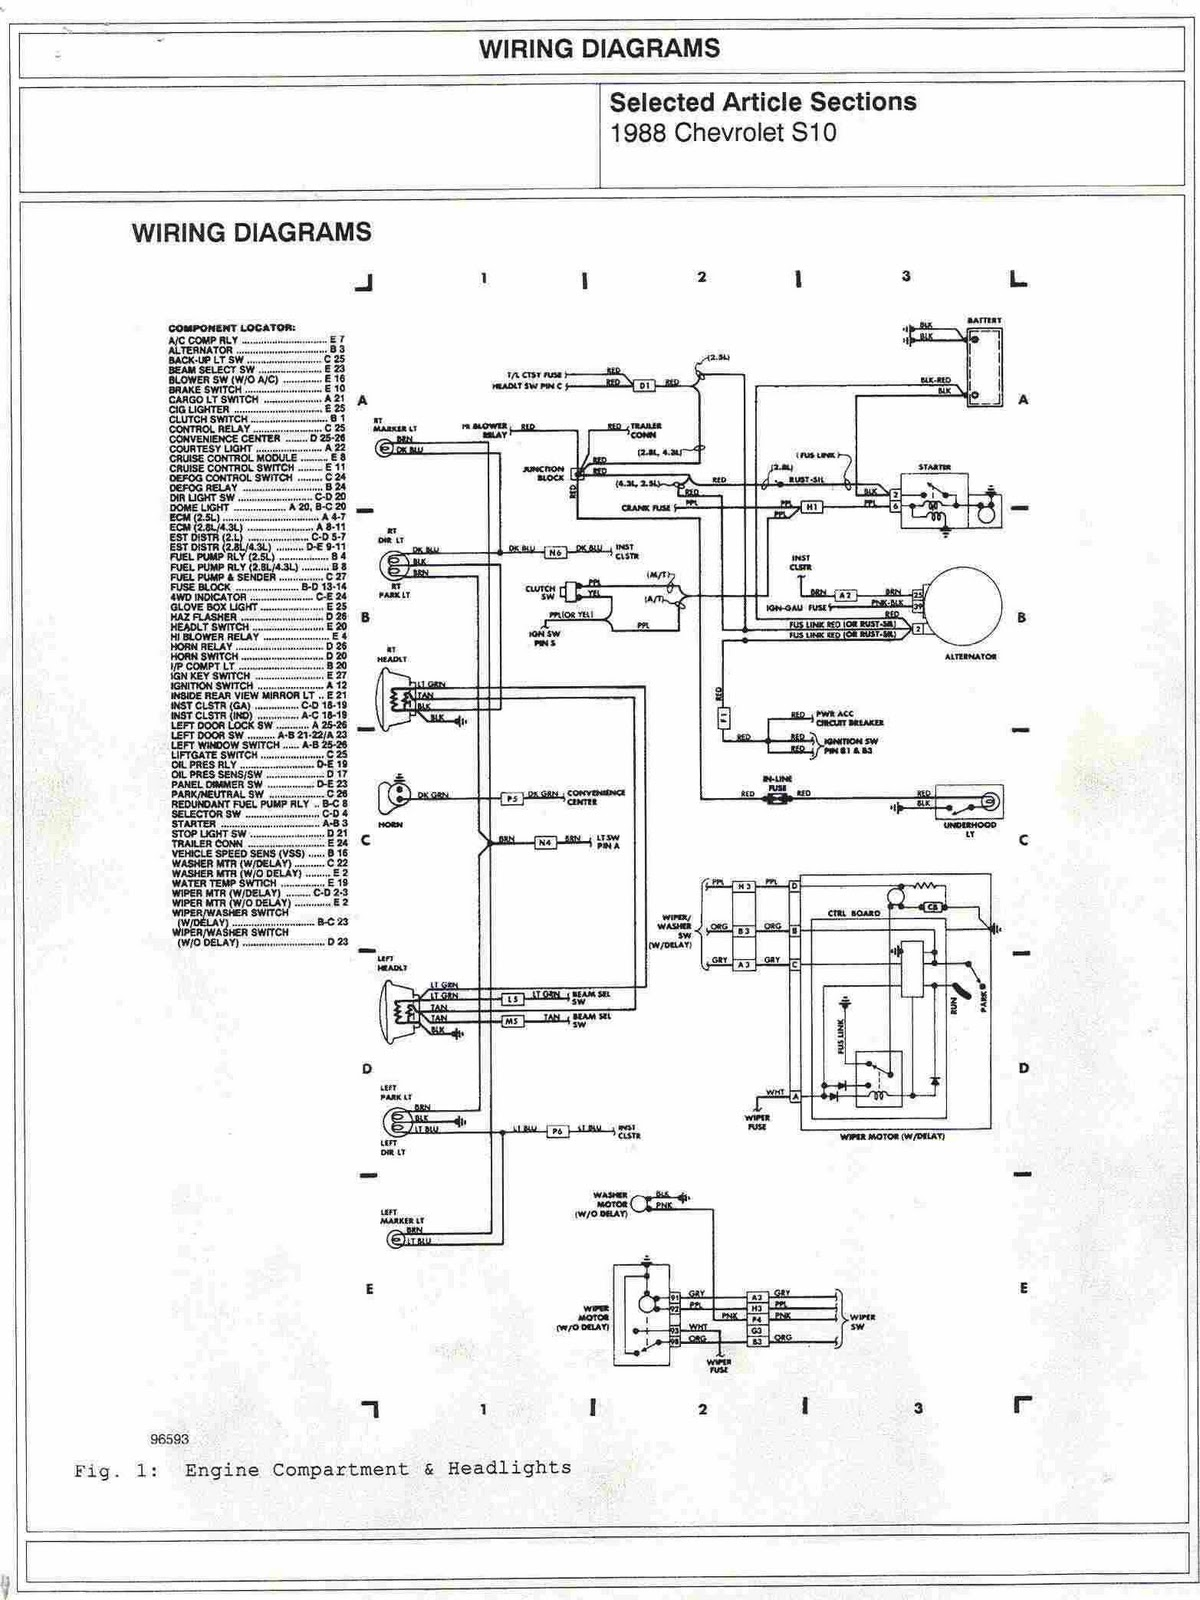 1988+Chevrolet+S10+Engine+Compartment+and+Headlights+Wiring+Diagrams 95 s10 wiring diagram 95 tahoe wiring diagram \u2022 wiring diagrams 1993 chevy s10 wiring diagram at virtualis.co